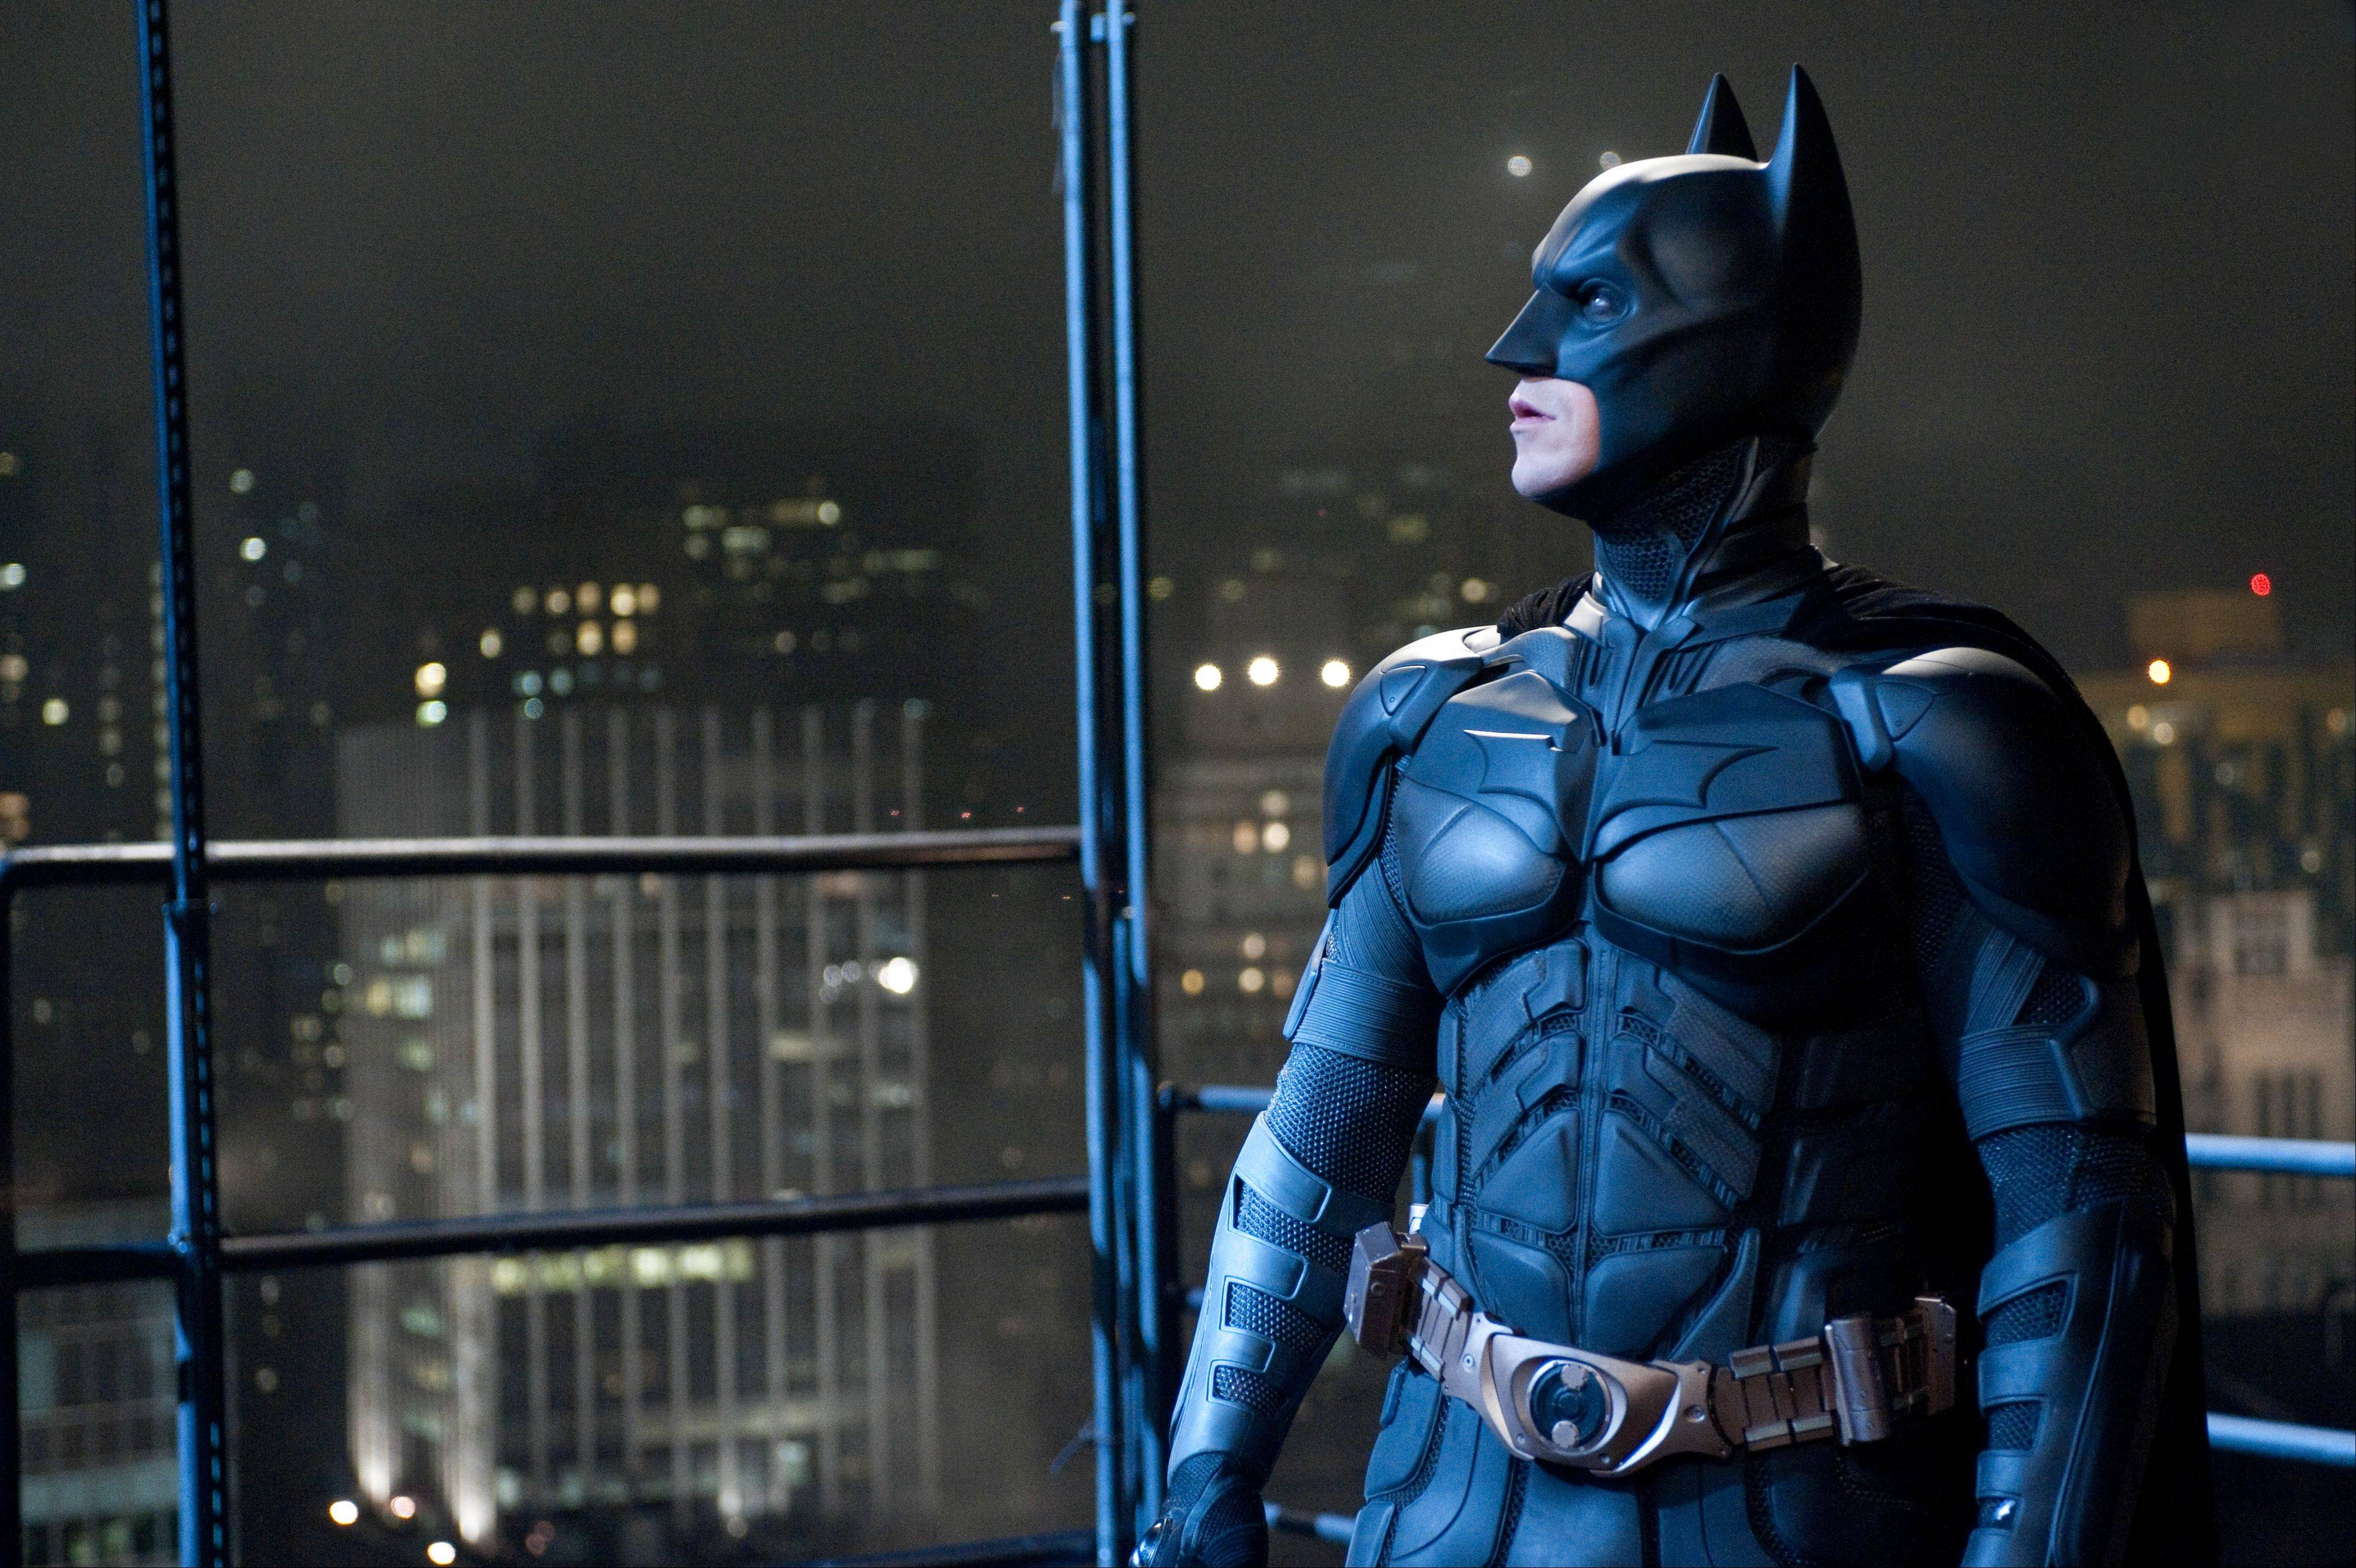 �The Dark Knight Rises� starring Christian Bale stayed atop the box office for the second straight weekend, making just over $64 million. But it�s lagging behind the numbers of its predecessor, 2008�s �The Dark Knight.�